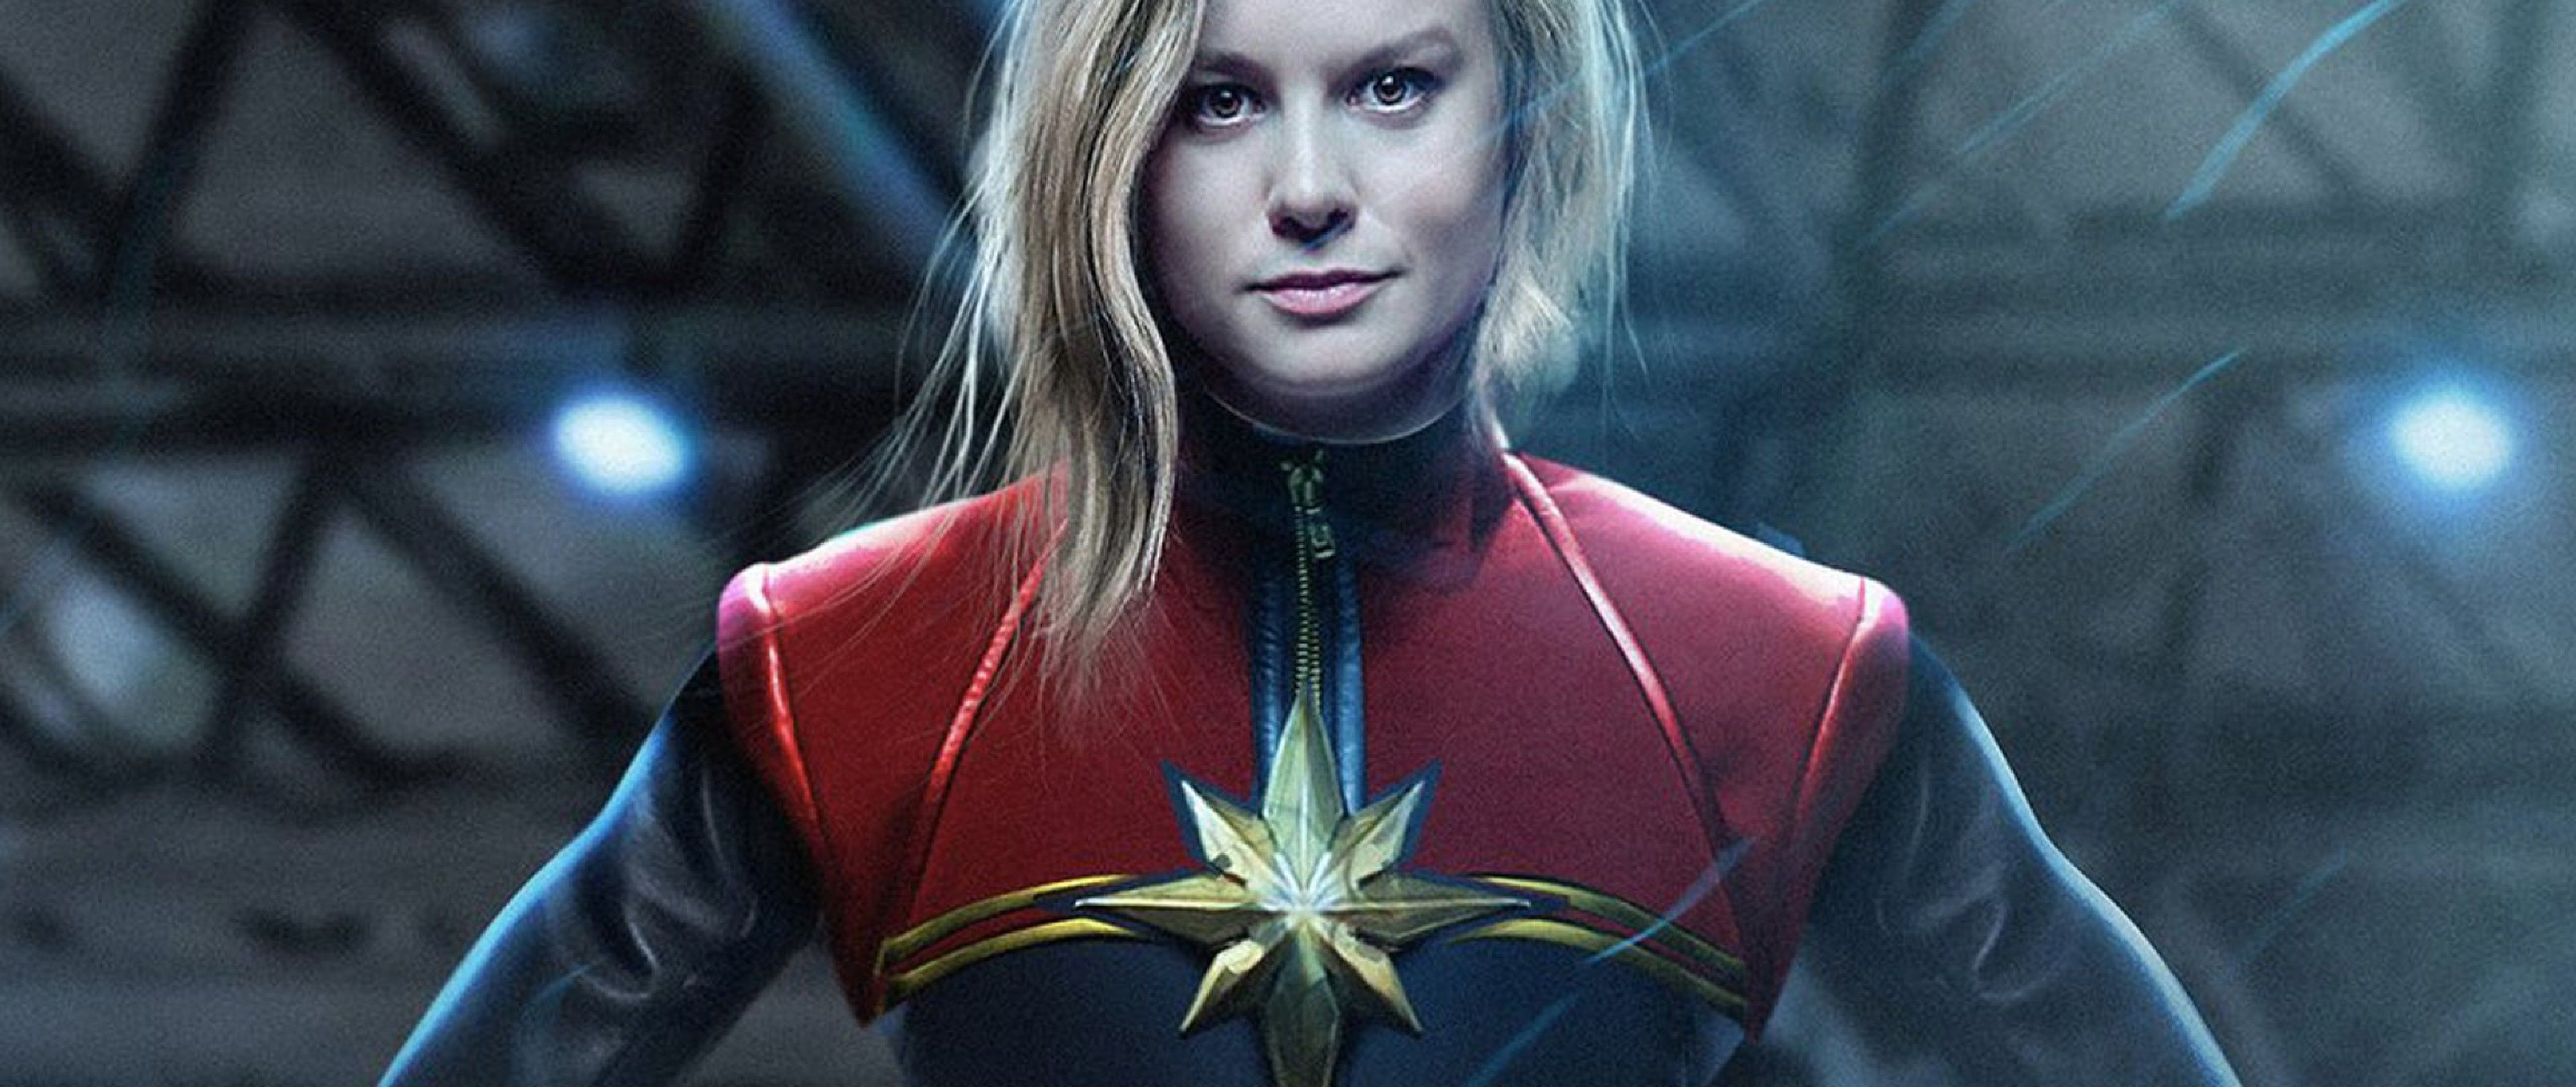 5120x2160 Captain Marvel HD Wallpaper 4K Ultra HD Wide TV - HD ...